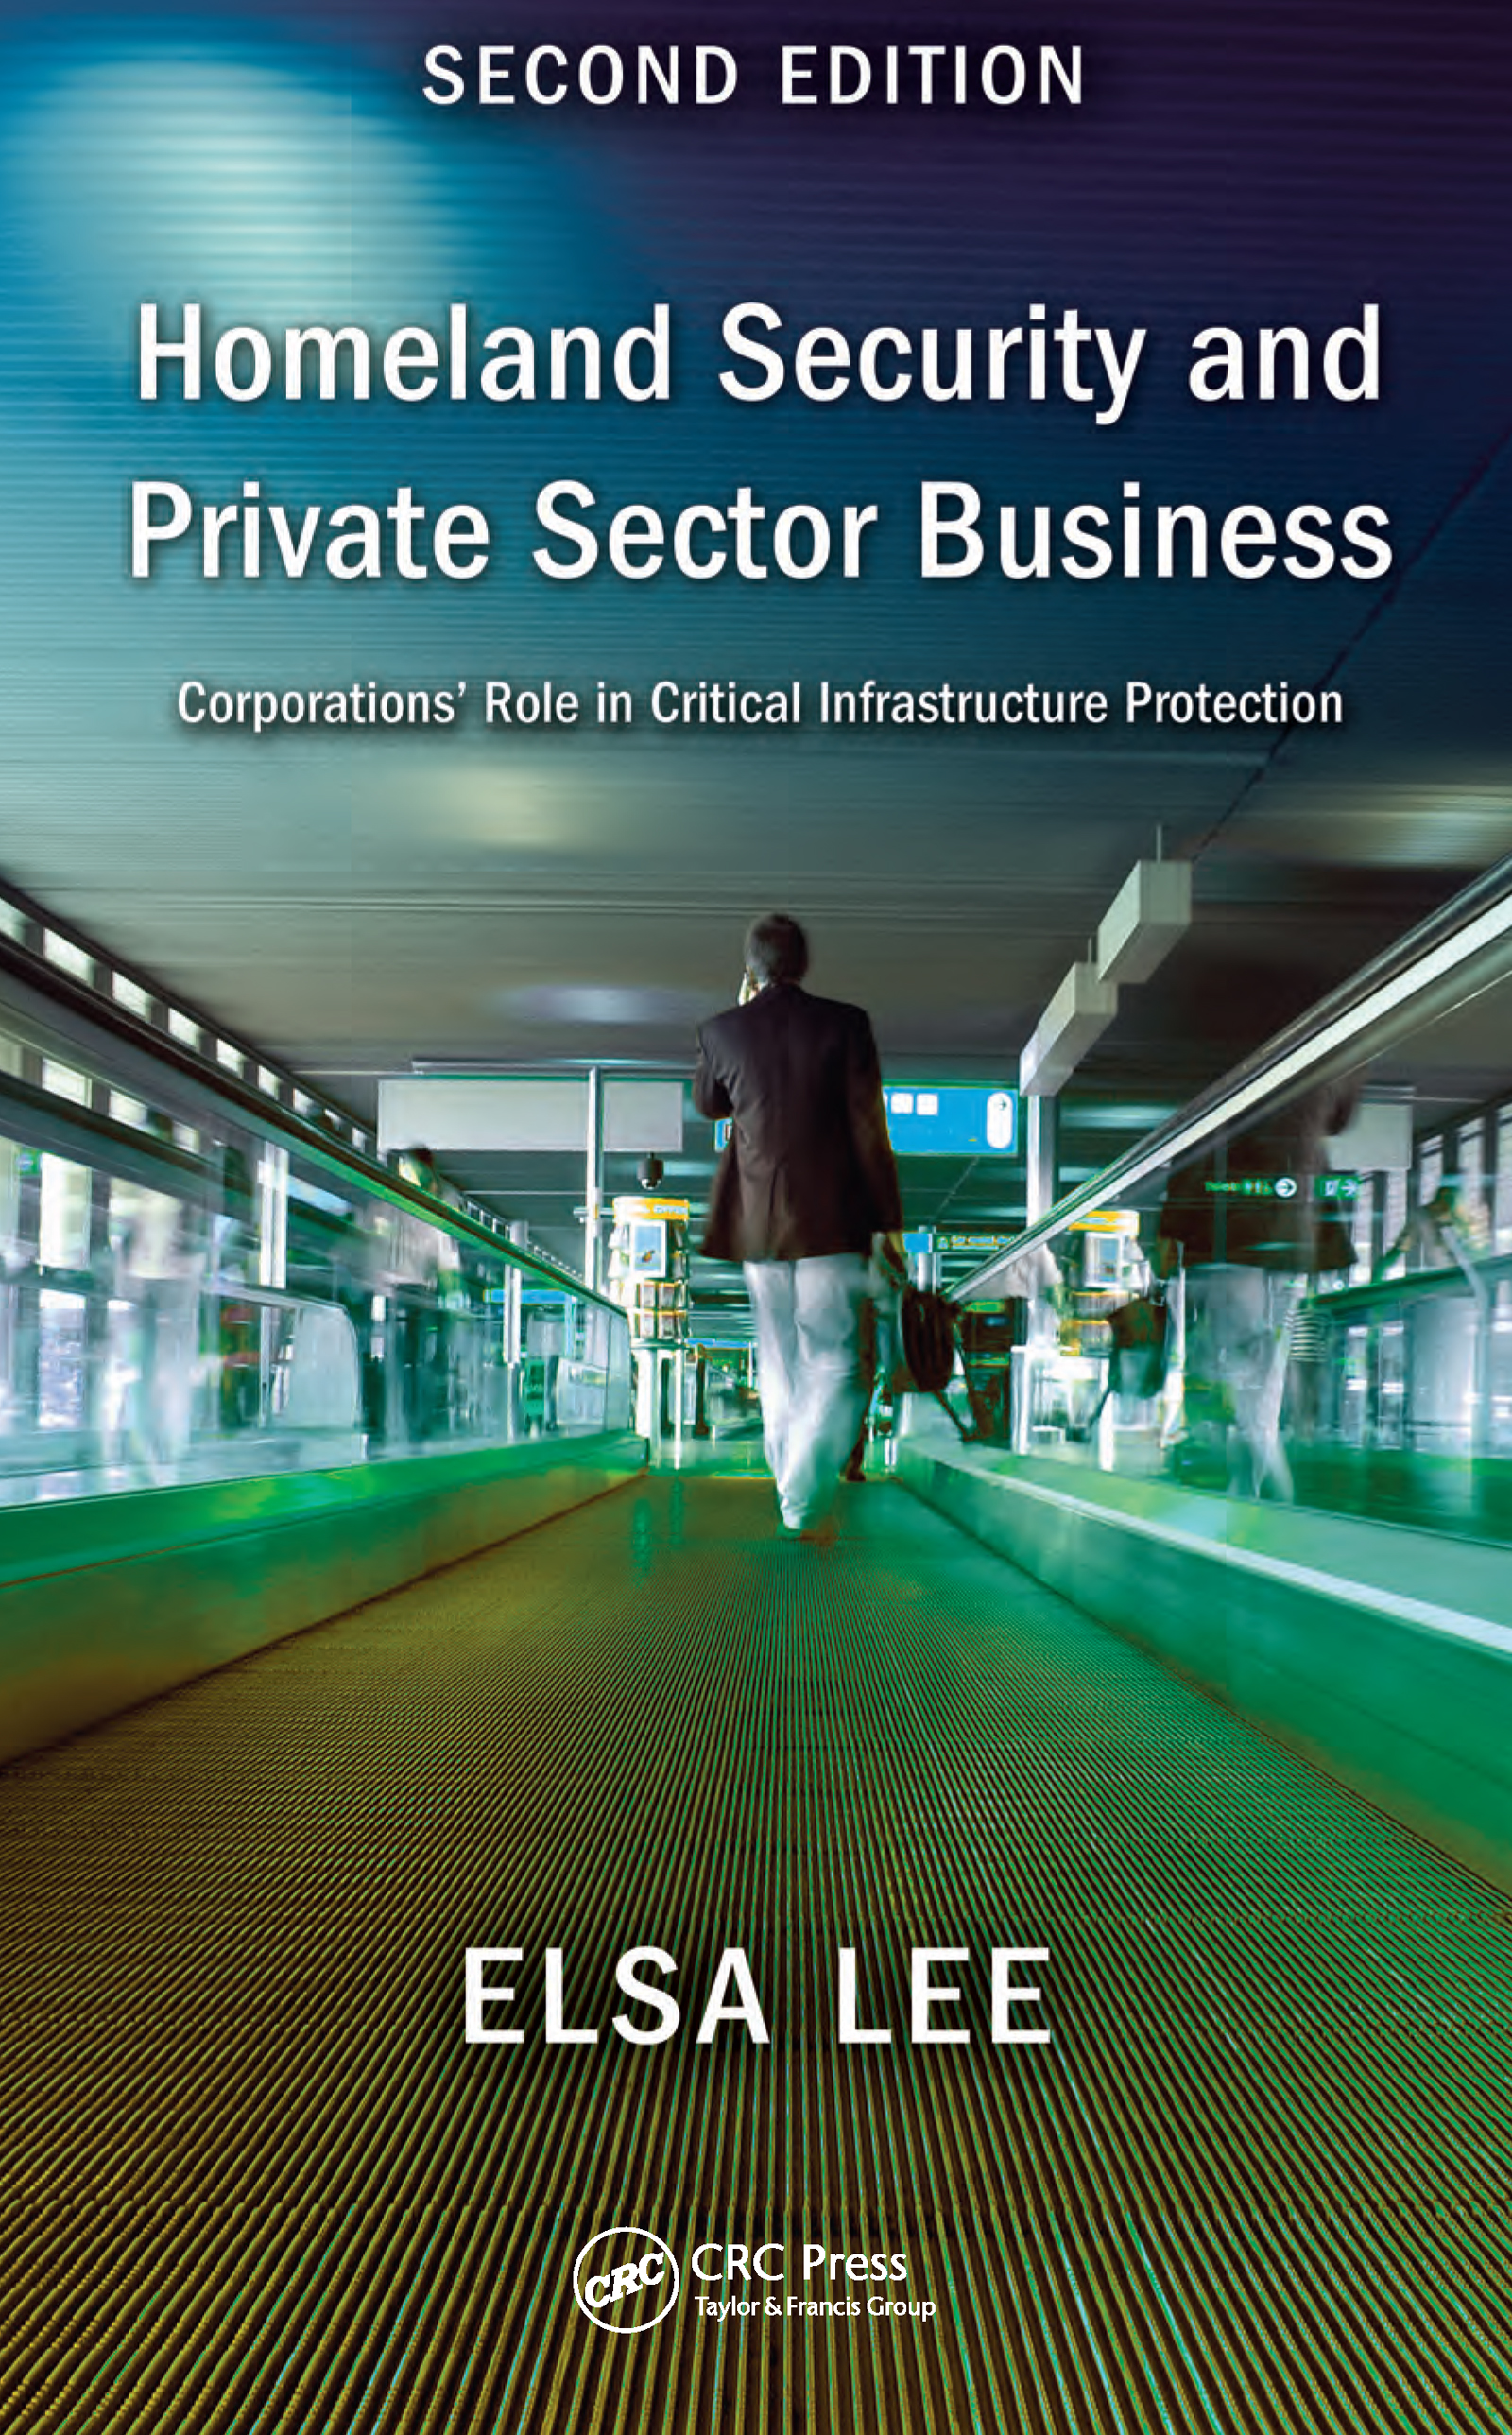 Homeland Security and Private Sector Business